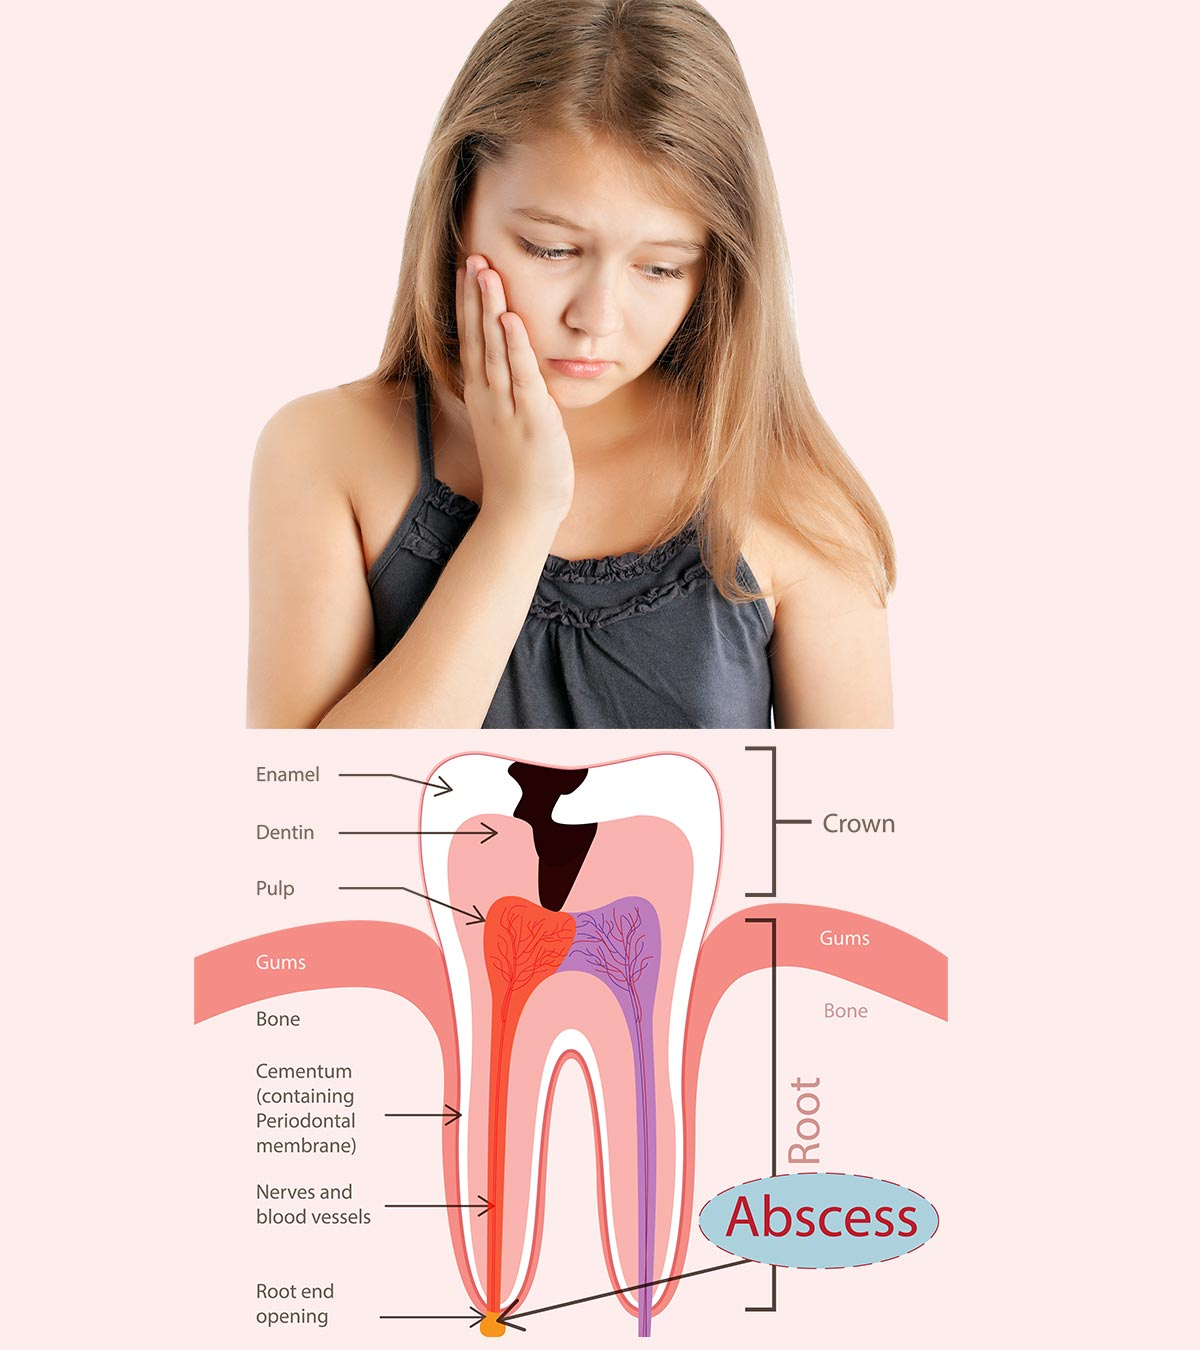 Abscessed Tooth In Child - Causes, Symptoms And Treatment